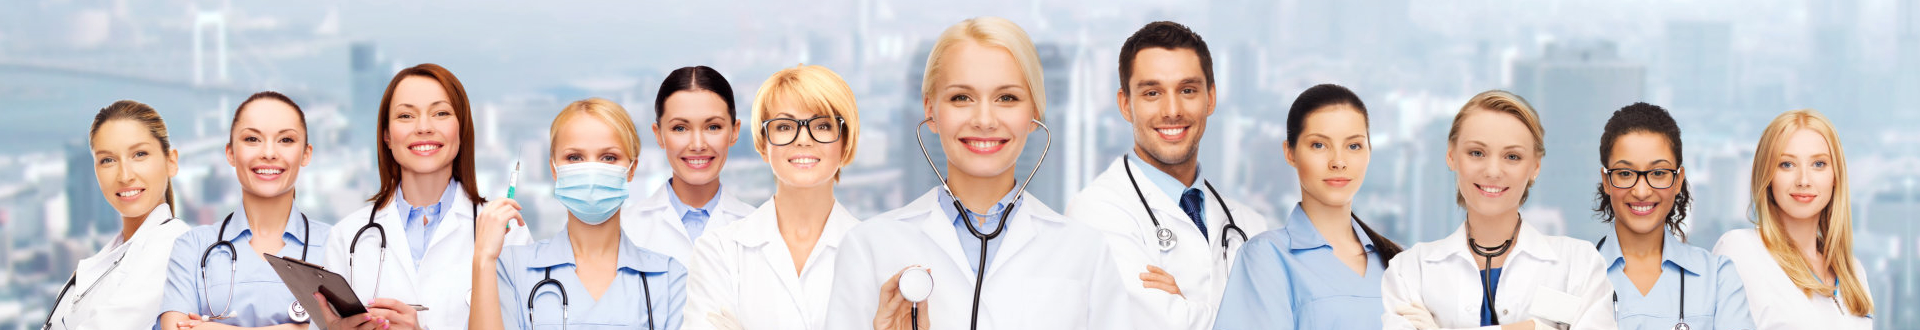 group of doctors with stethoscope